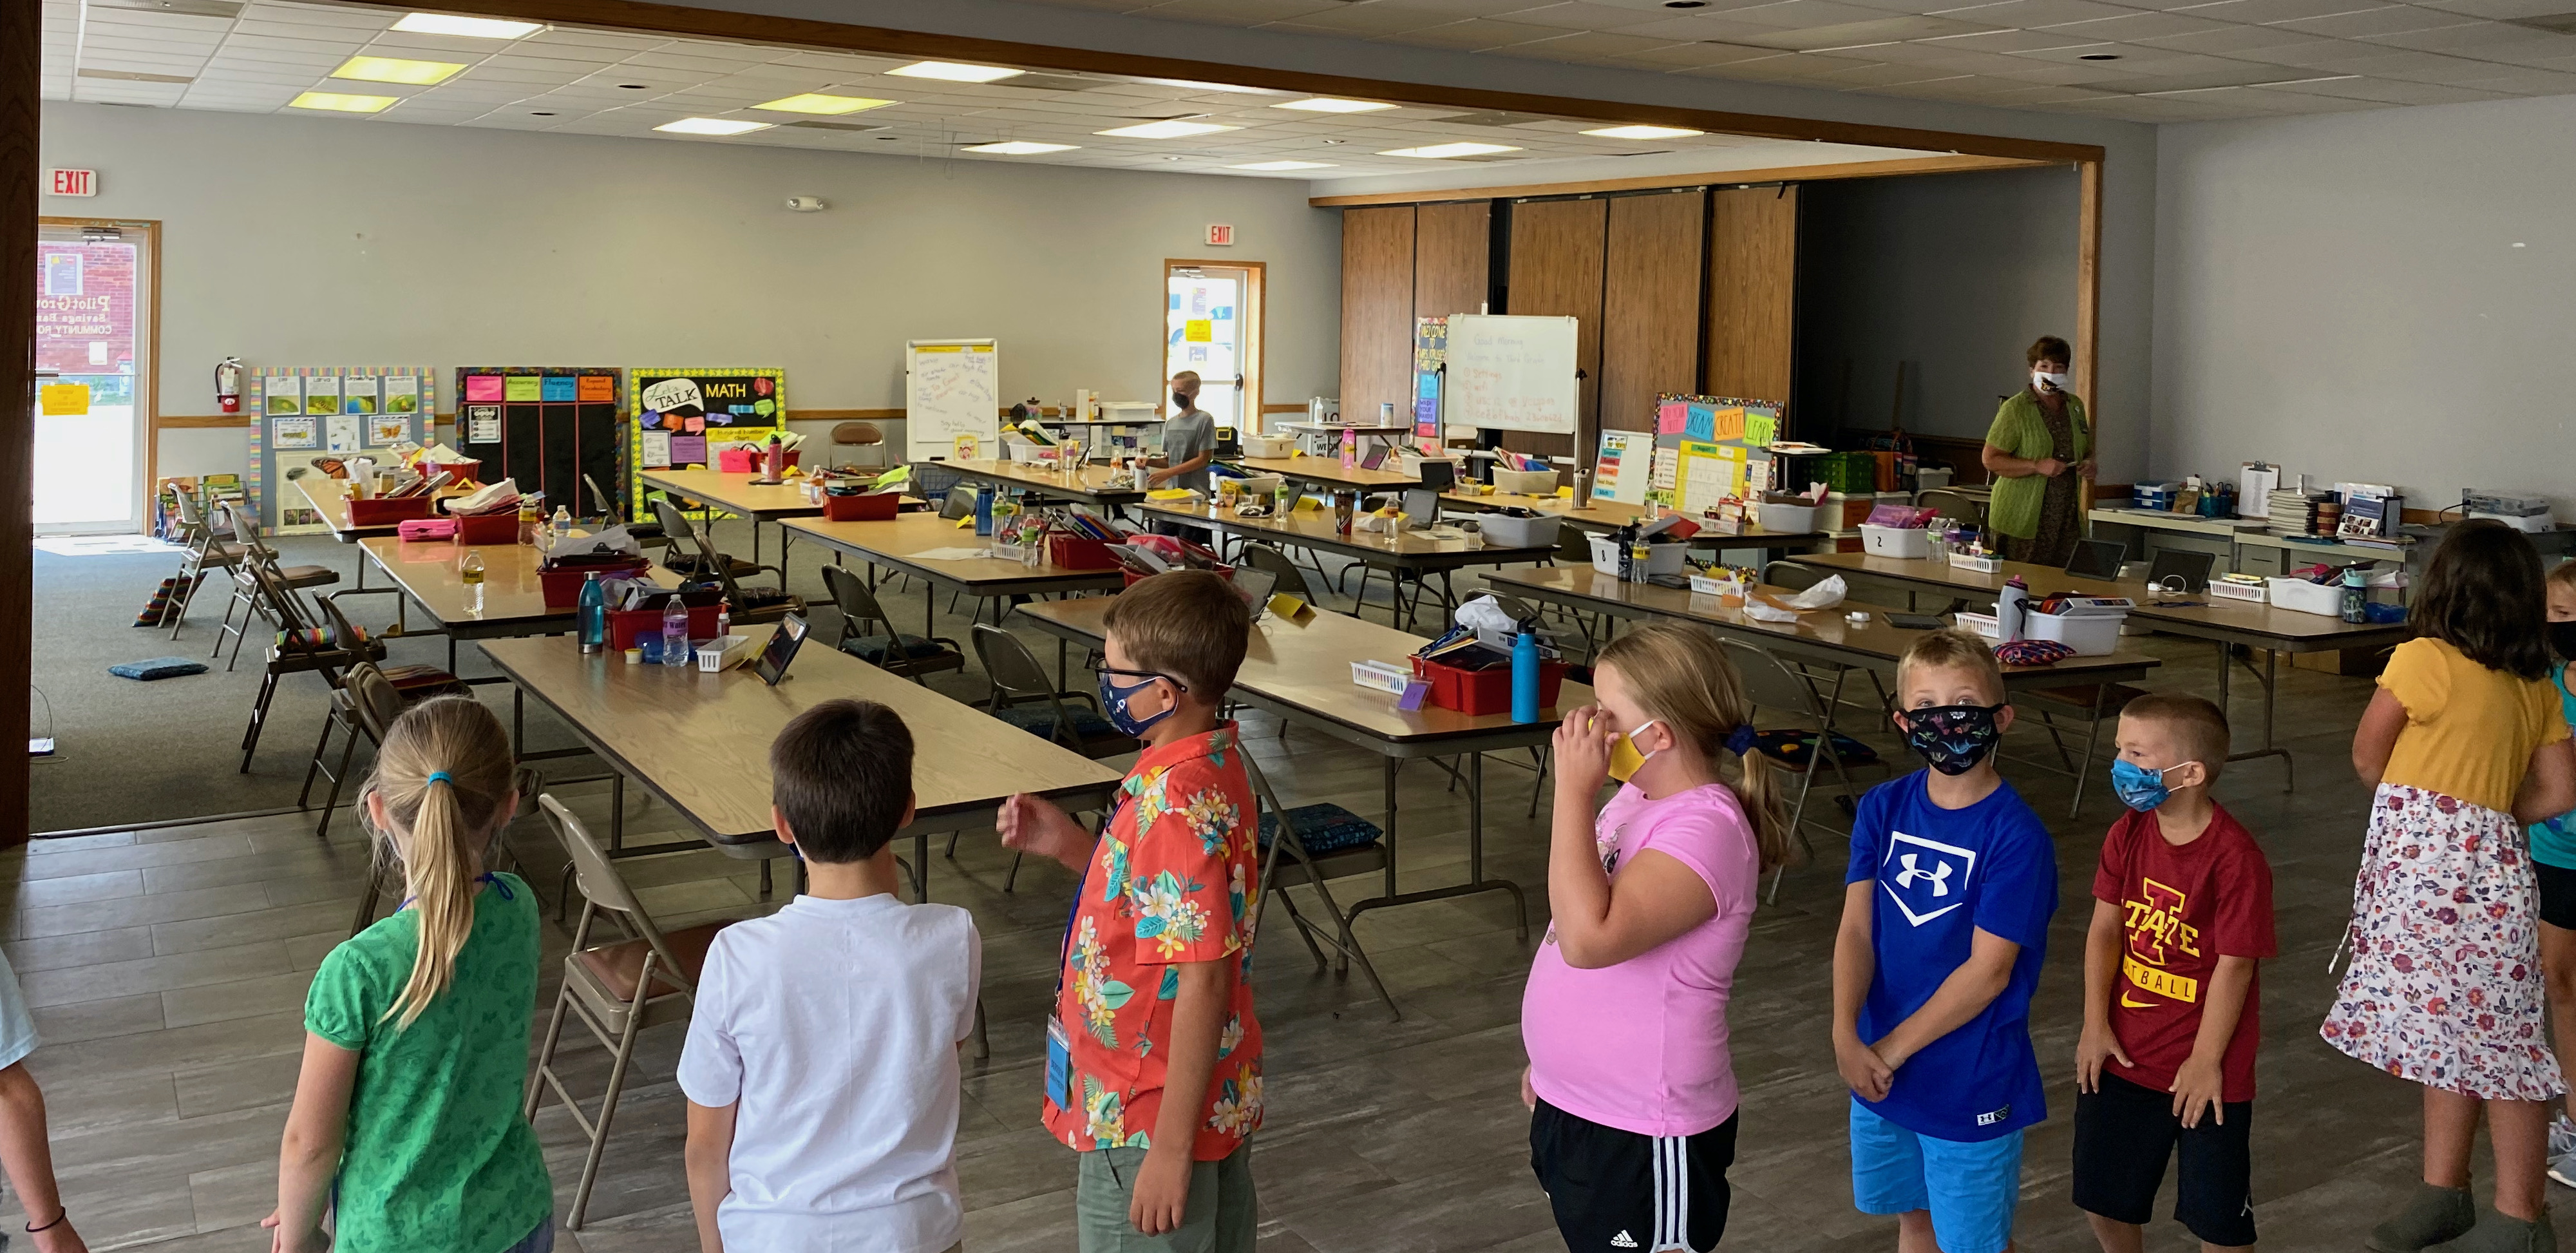 The community room at Pilot Grove Savings Bank in Donnellson serves as one classroom POD for the school district.